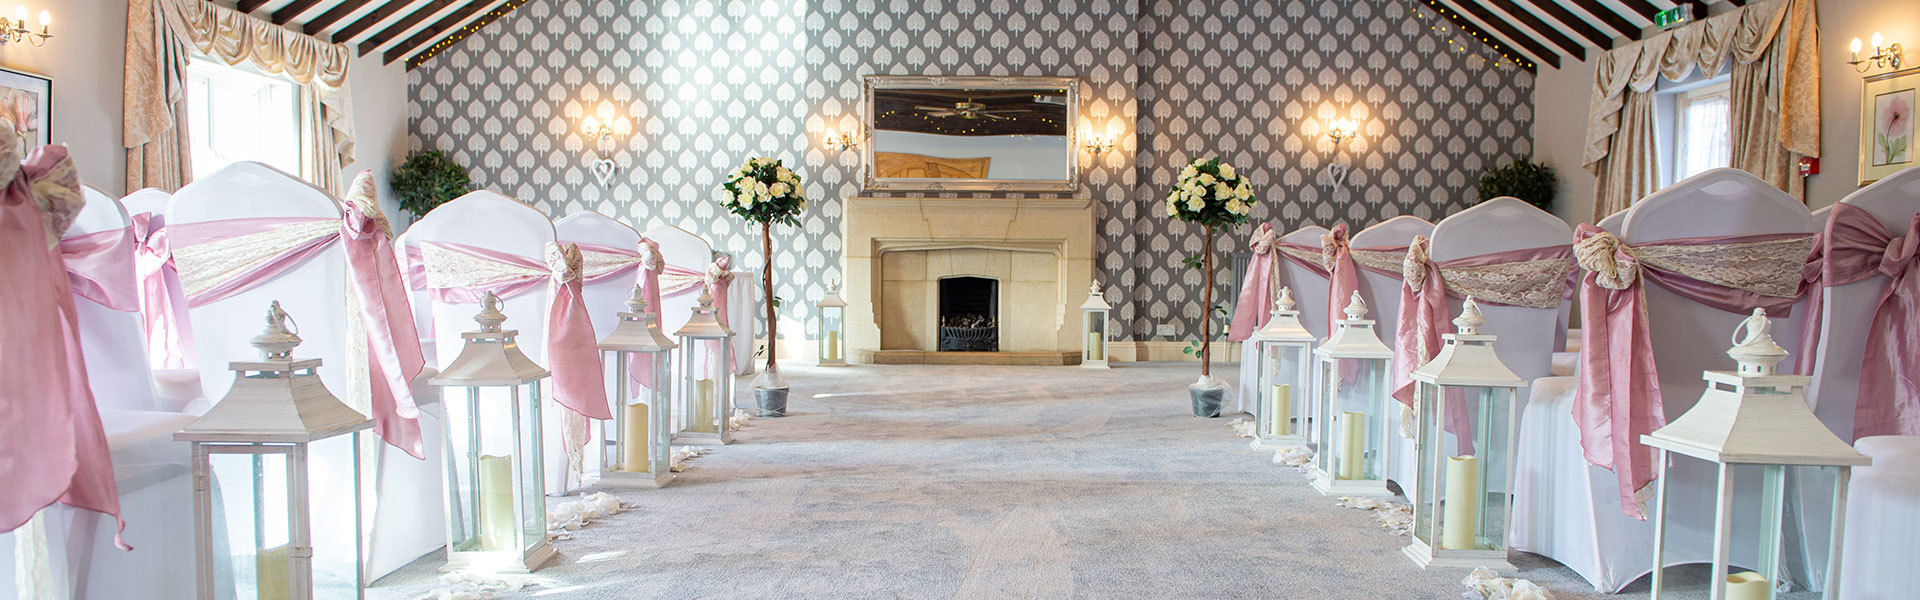 Ceremony room Slider